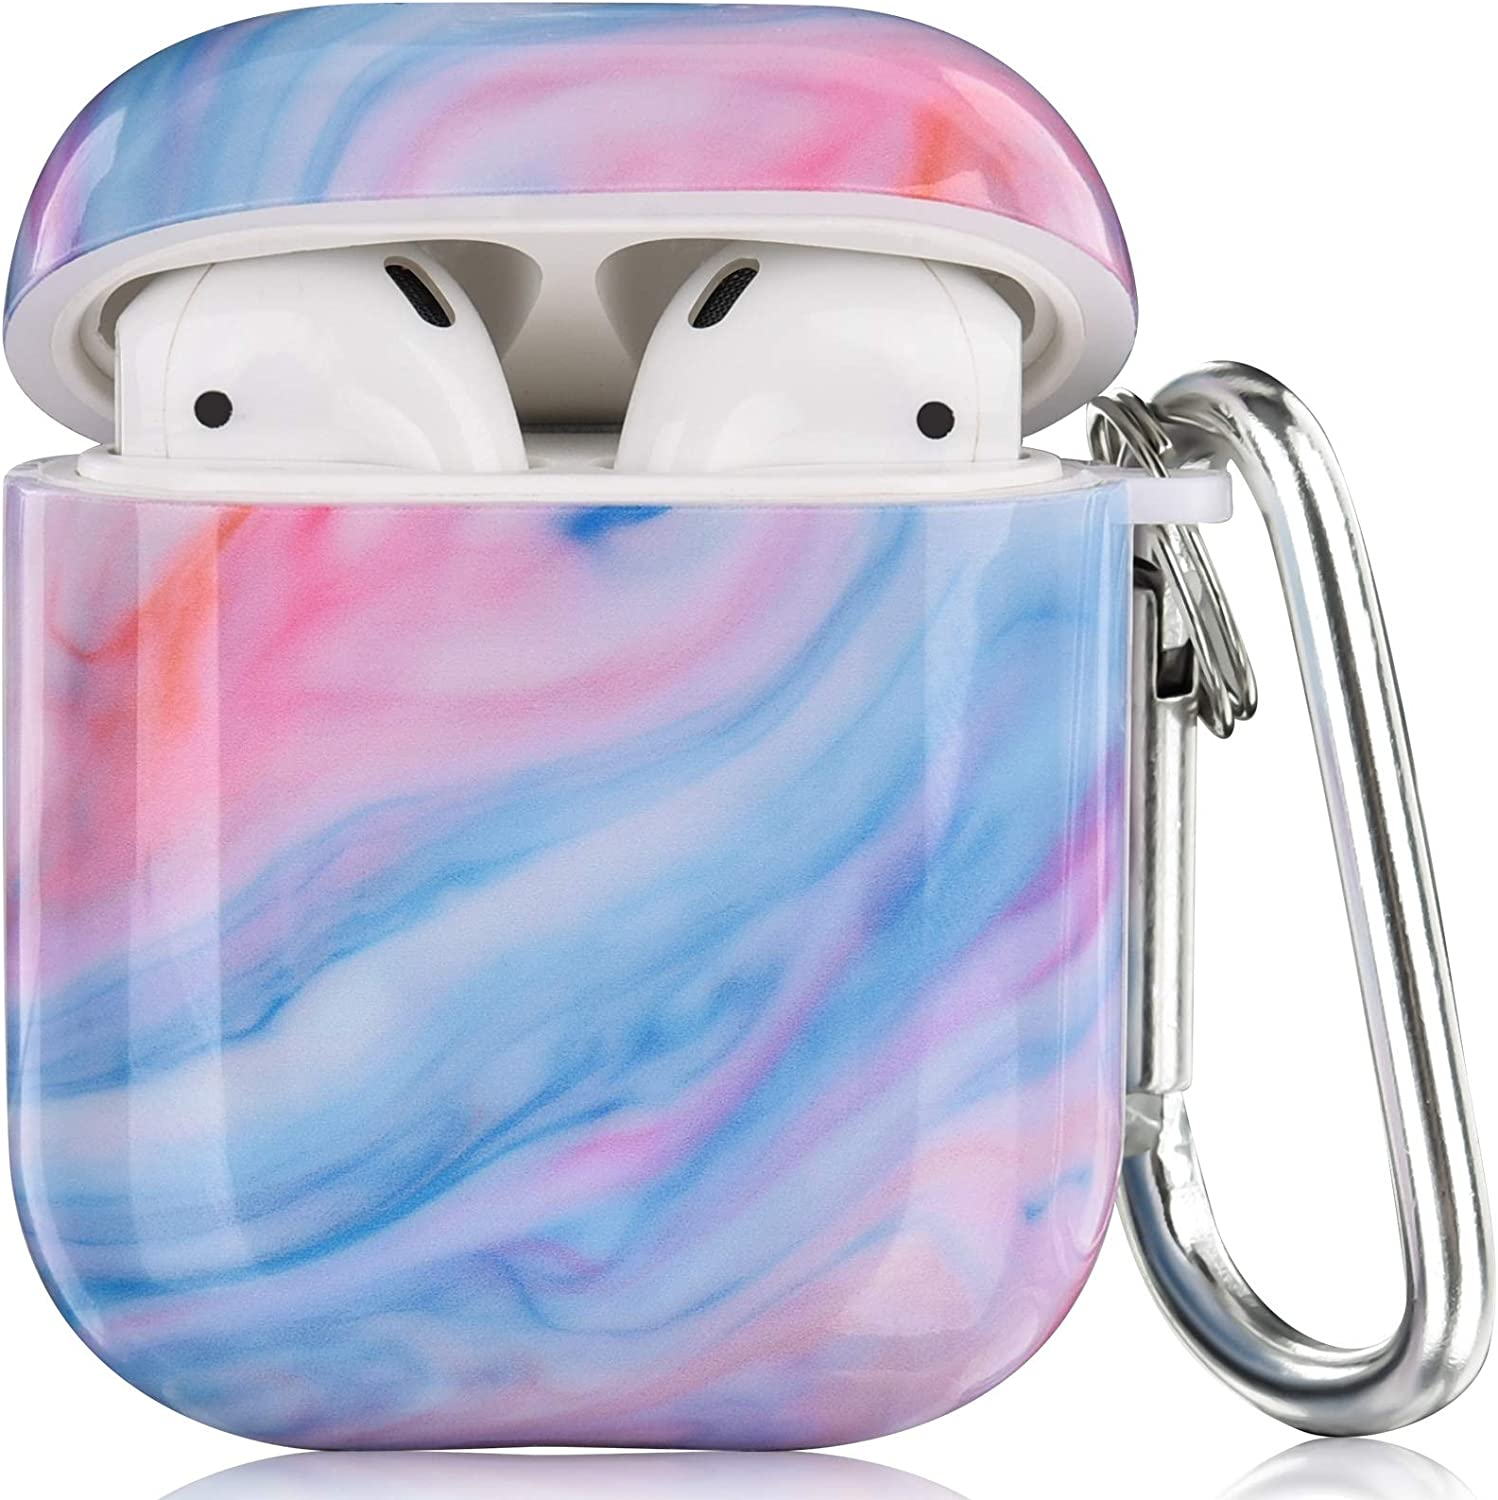 CAGOS Compatible with Airpods Case, 3 in 1 Cute Marble Protective Hard Case Cover Portable & Shockproof Women Girls with Keychain/Strap/Earhooks for Airpods 2/1 Charging Case (Lilac)